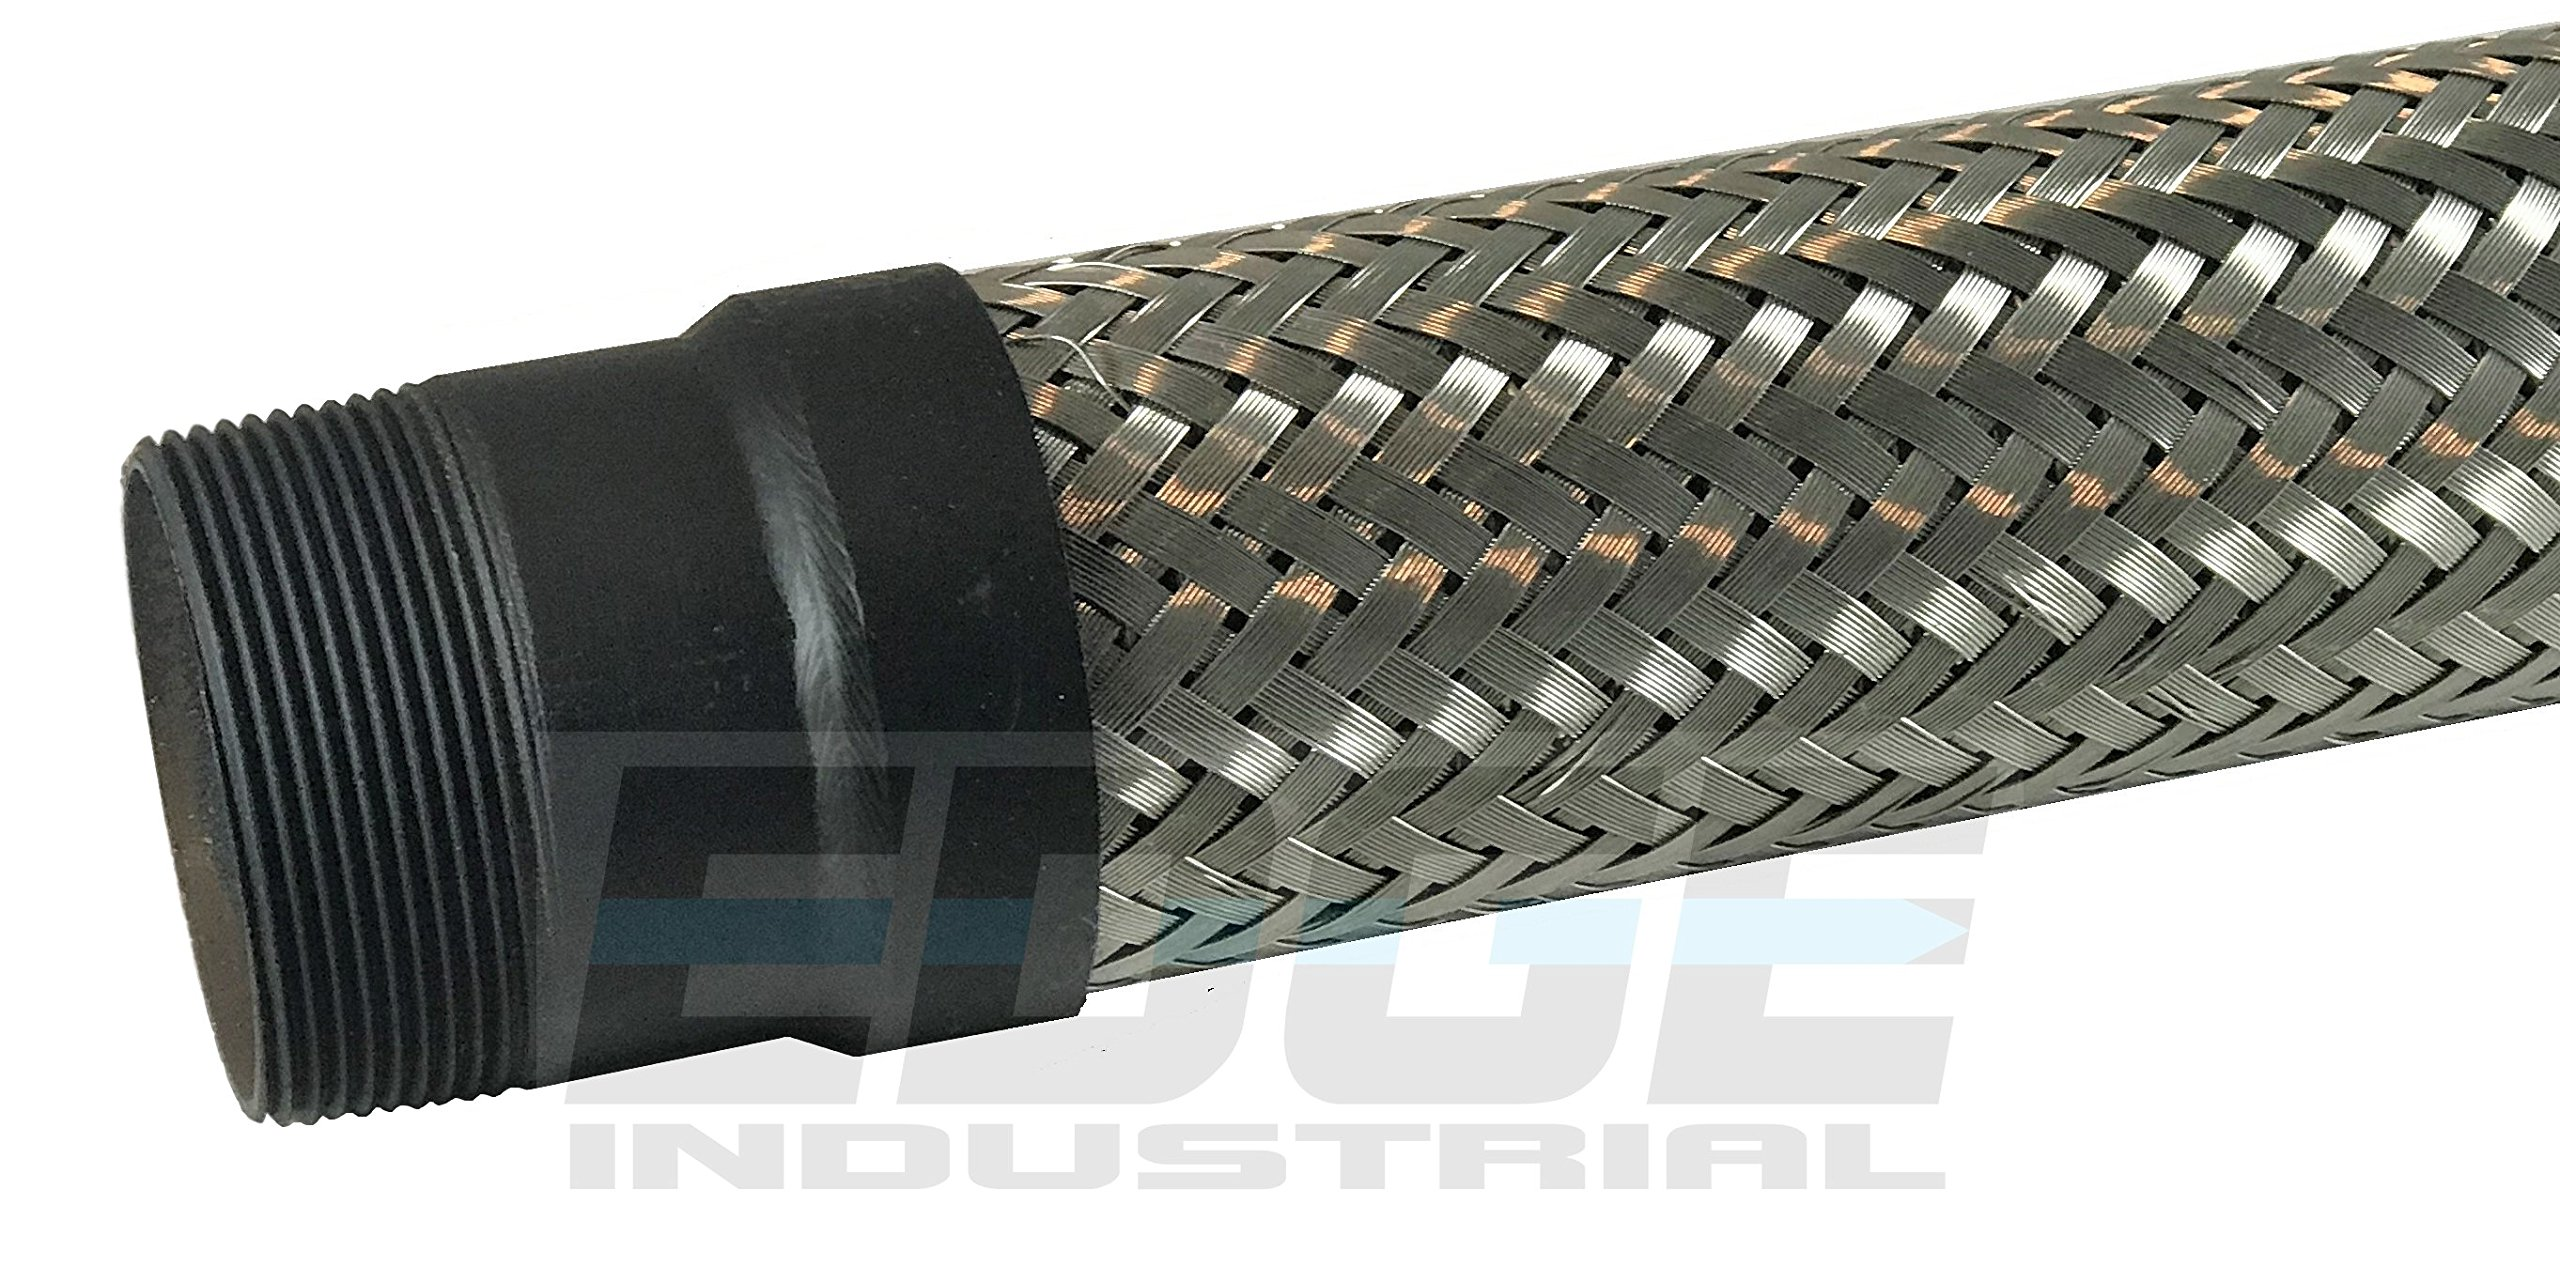 INDUSTRIAL GRADE HEAVY DUTY FLEXIBLE METAL HOSE CONNECTOR ( MADE IN USA ) 2'' MALE NPT ENDS x 12 inch TOTAL LENGTH STAINLESS STEEL BRAIDED FLEX